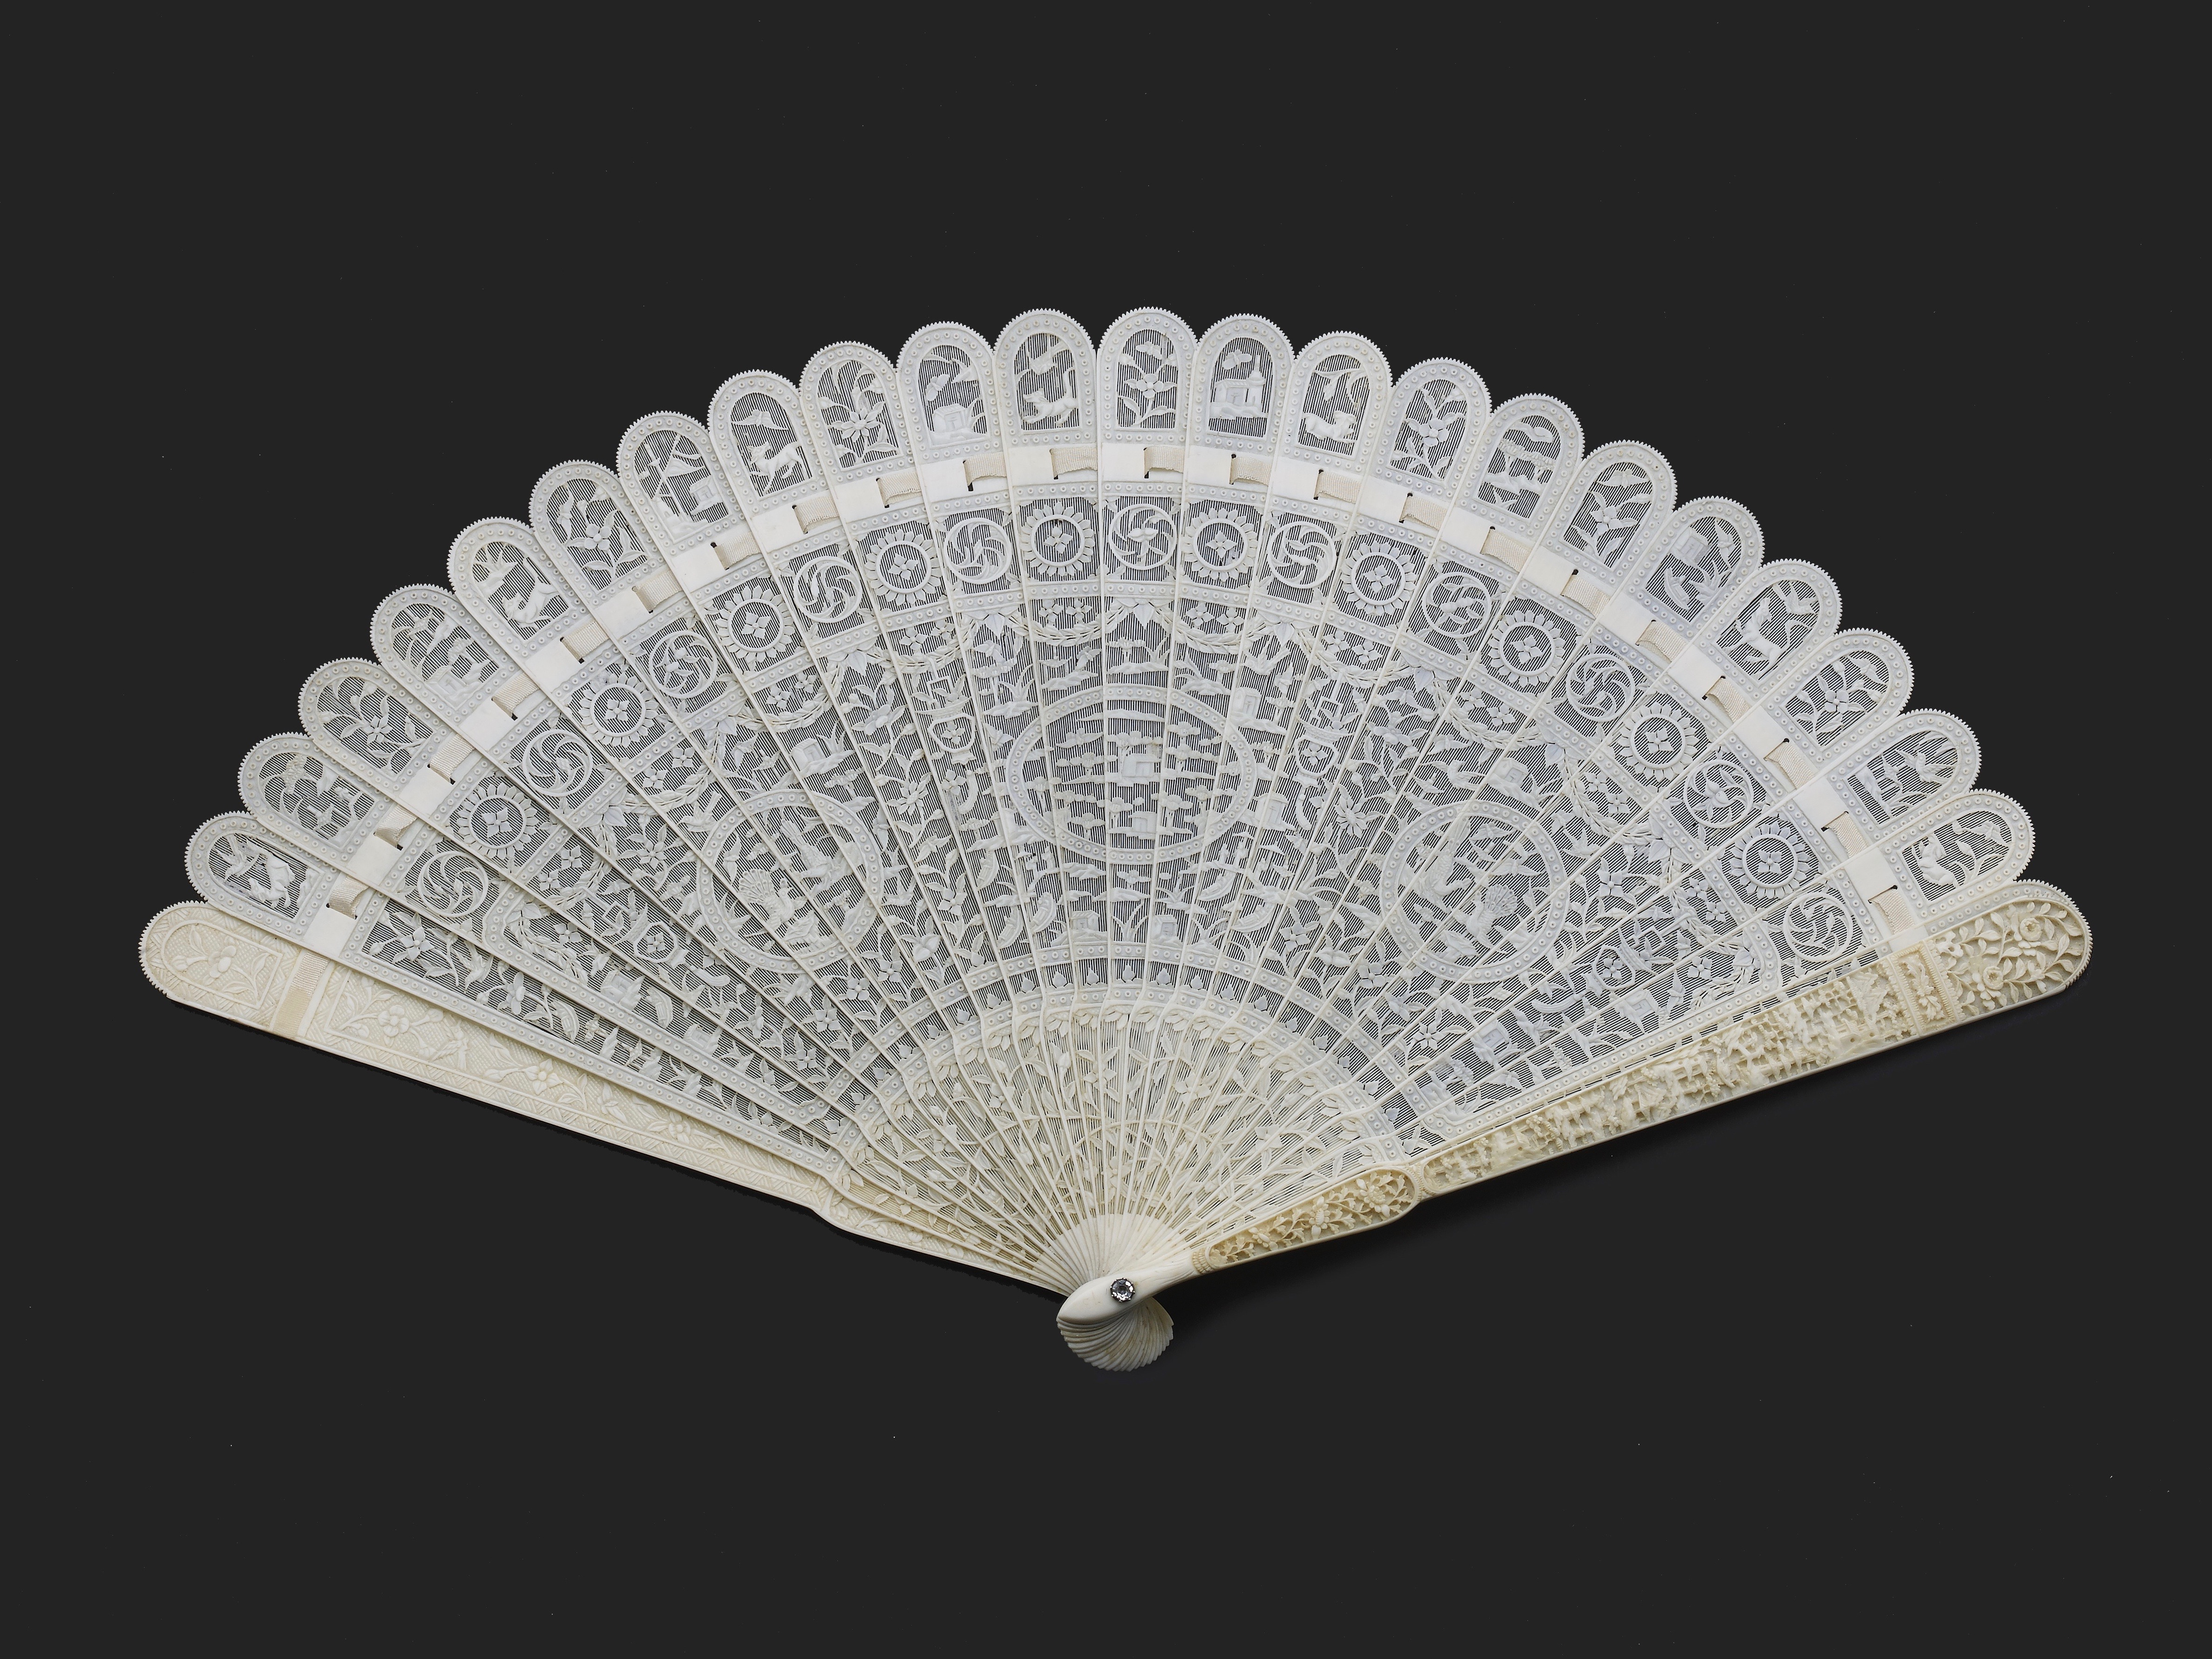 Lot 3 - A CHINESE EXPORT IVORY BRISE FAN, QING DYNASTY, QIANLONG PERIOD, CIRCA 1785